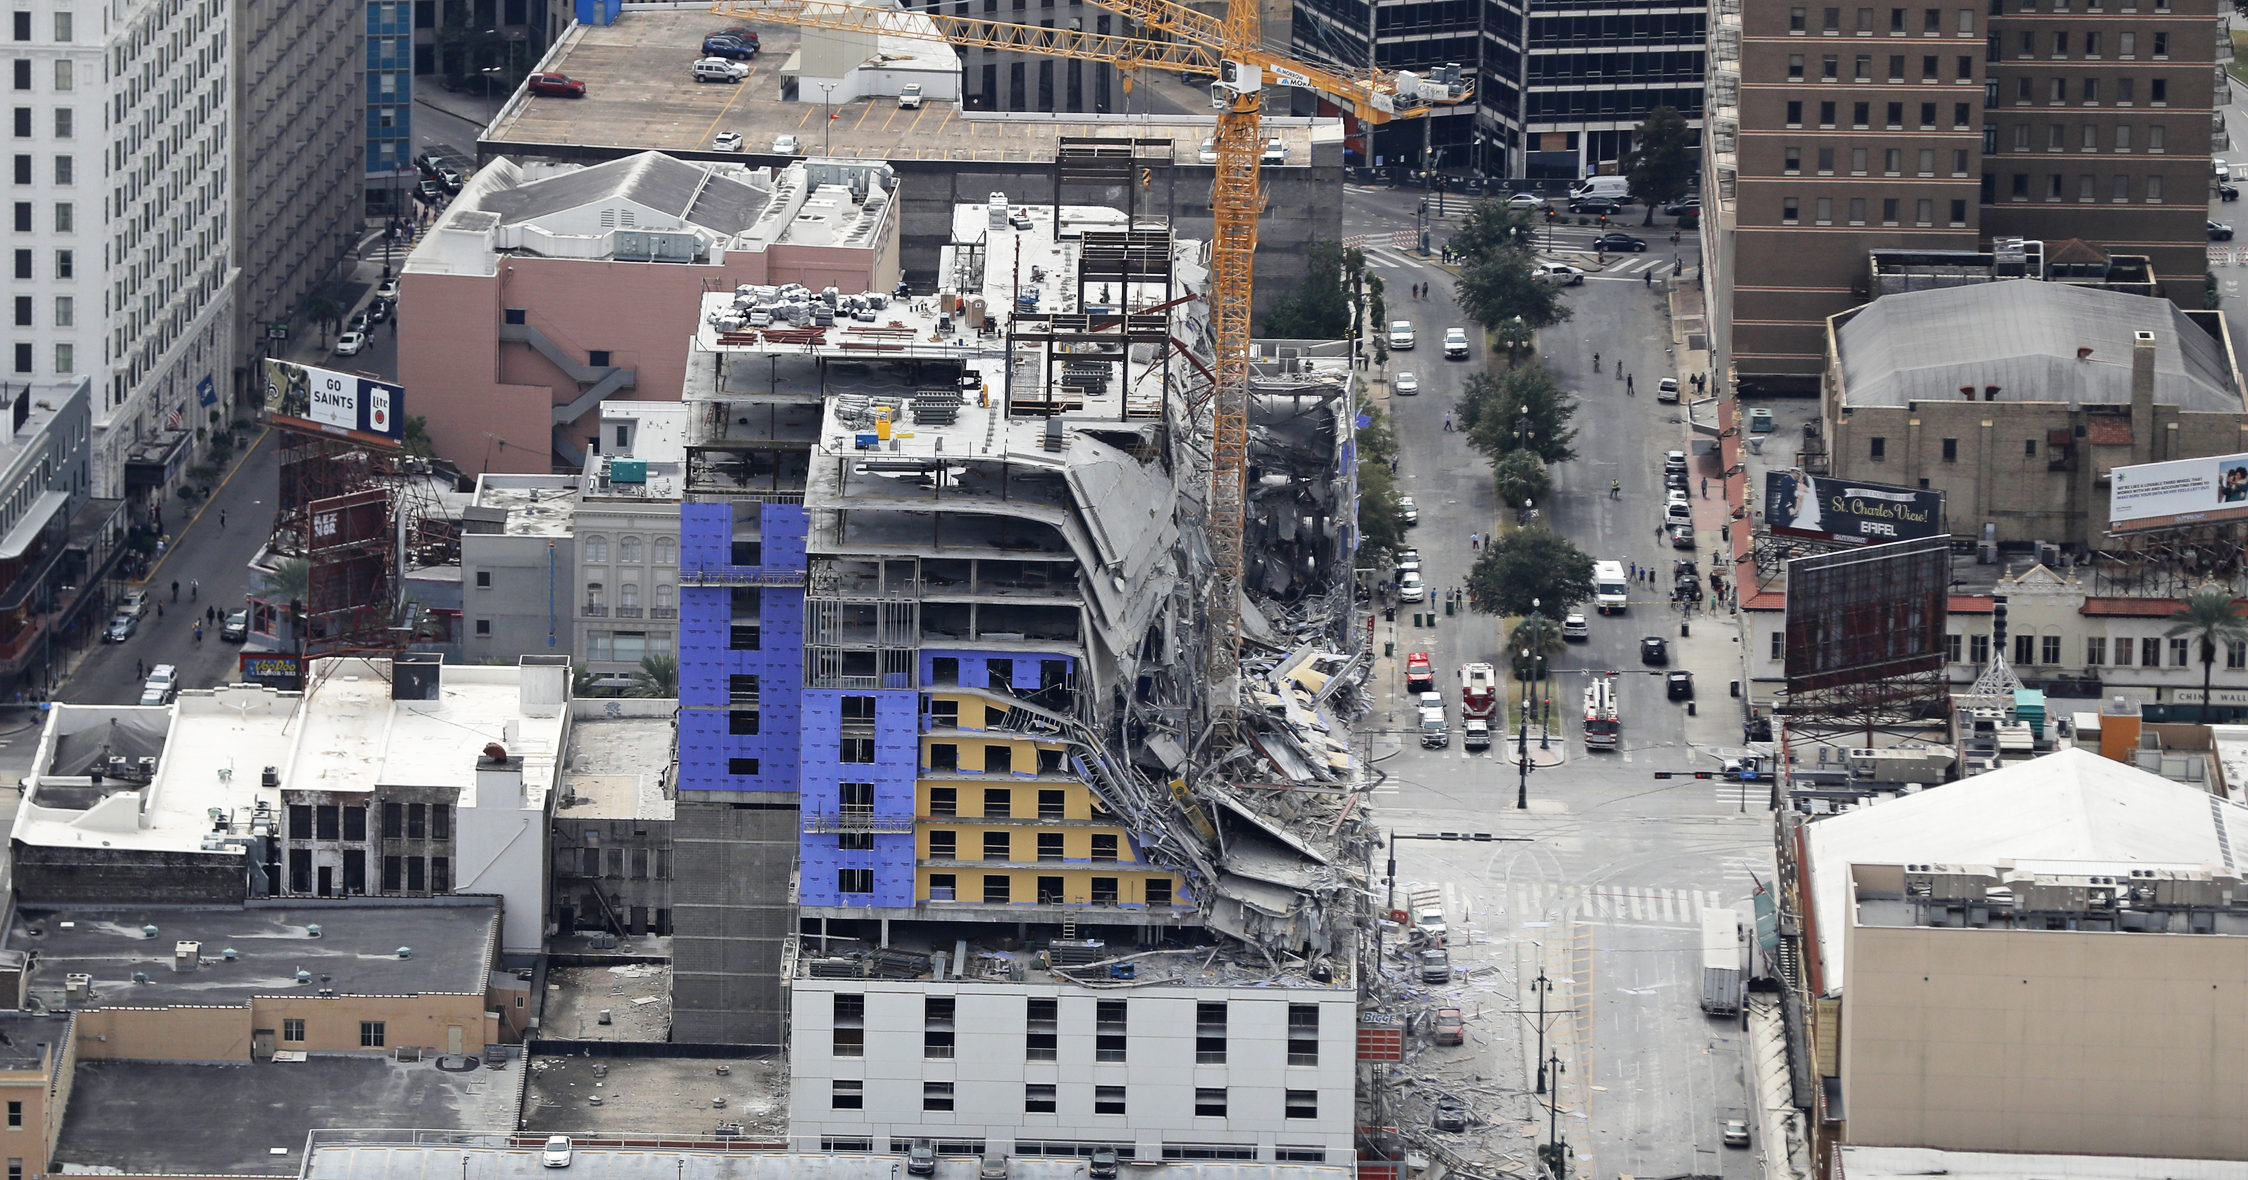 This Oct. 12, 2019, file photo shows the Hard Rock Hotel after a partial collapse in New Orleans that killed three construction workers. Crews on Aug. 8, 2020, recovered the body of one of two workers who had been trapped in the collapse nearly 10 months ago.